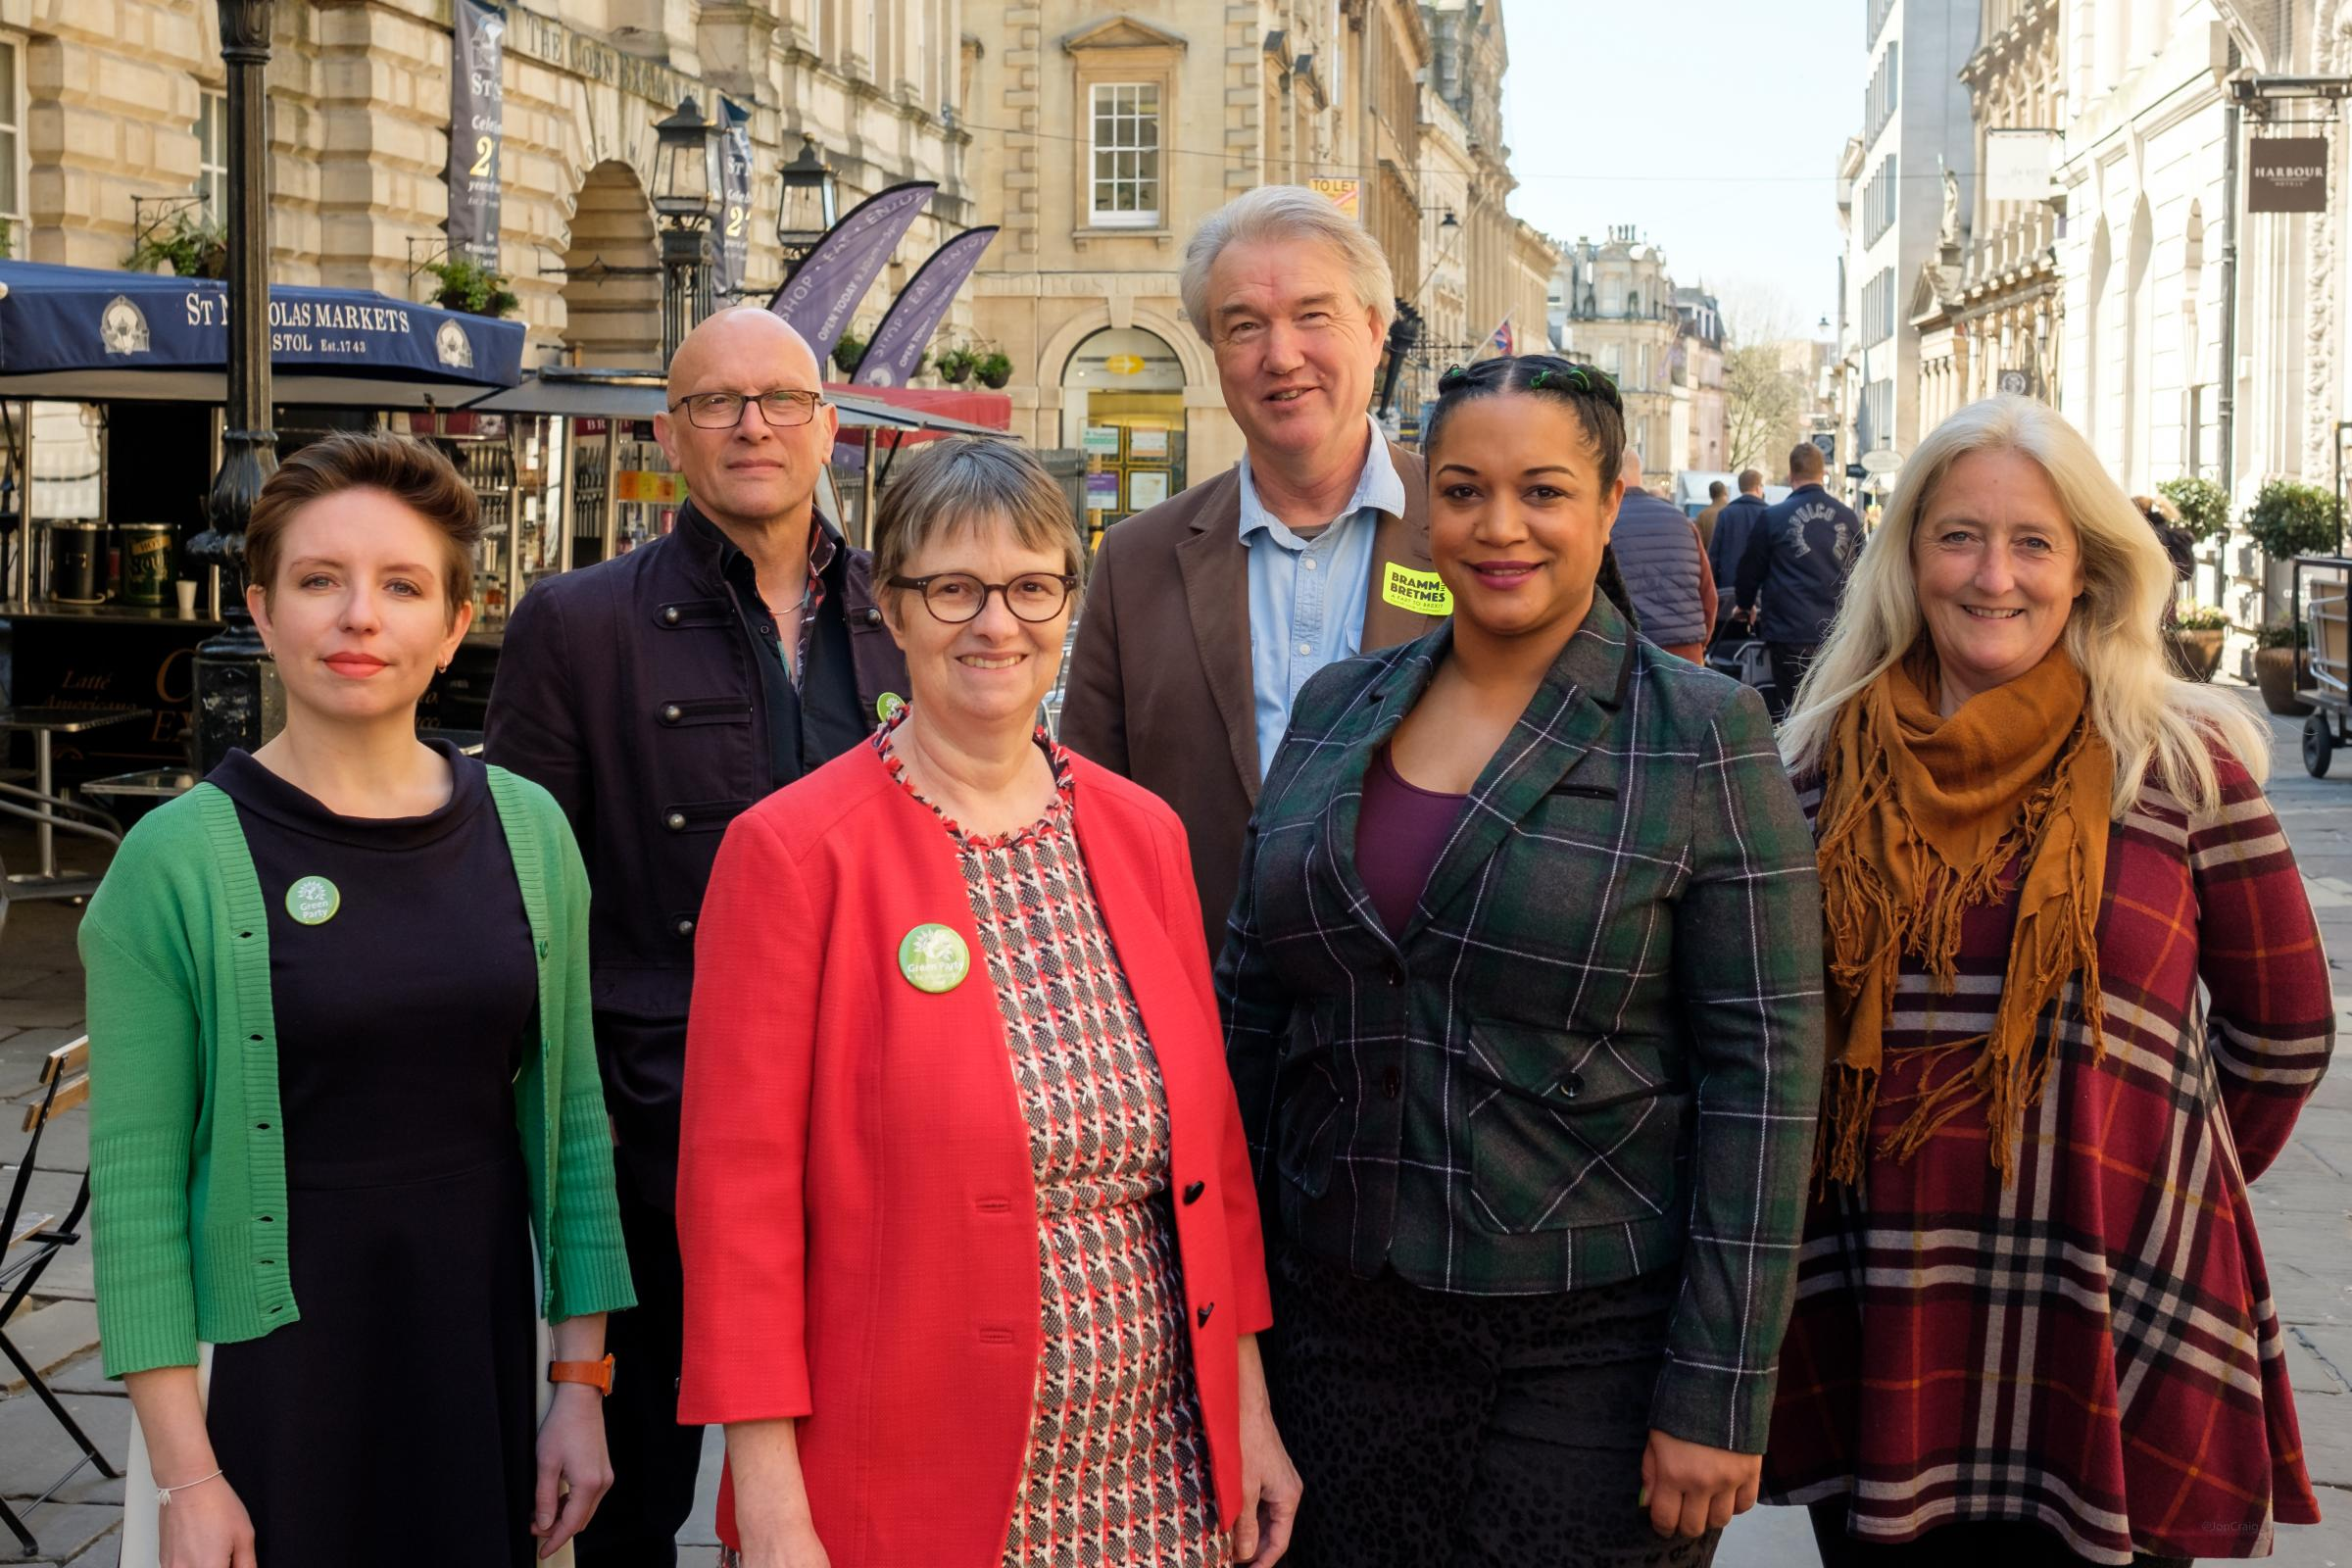 Green Party announces candidates from south west England - and one is from Falmouth